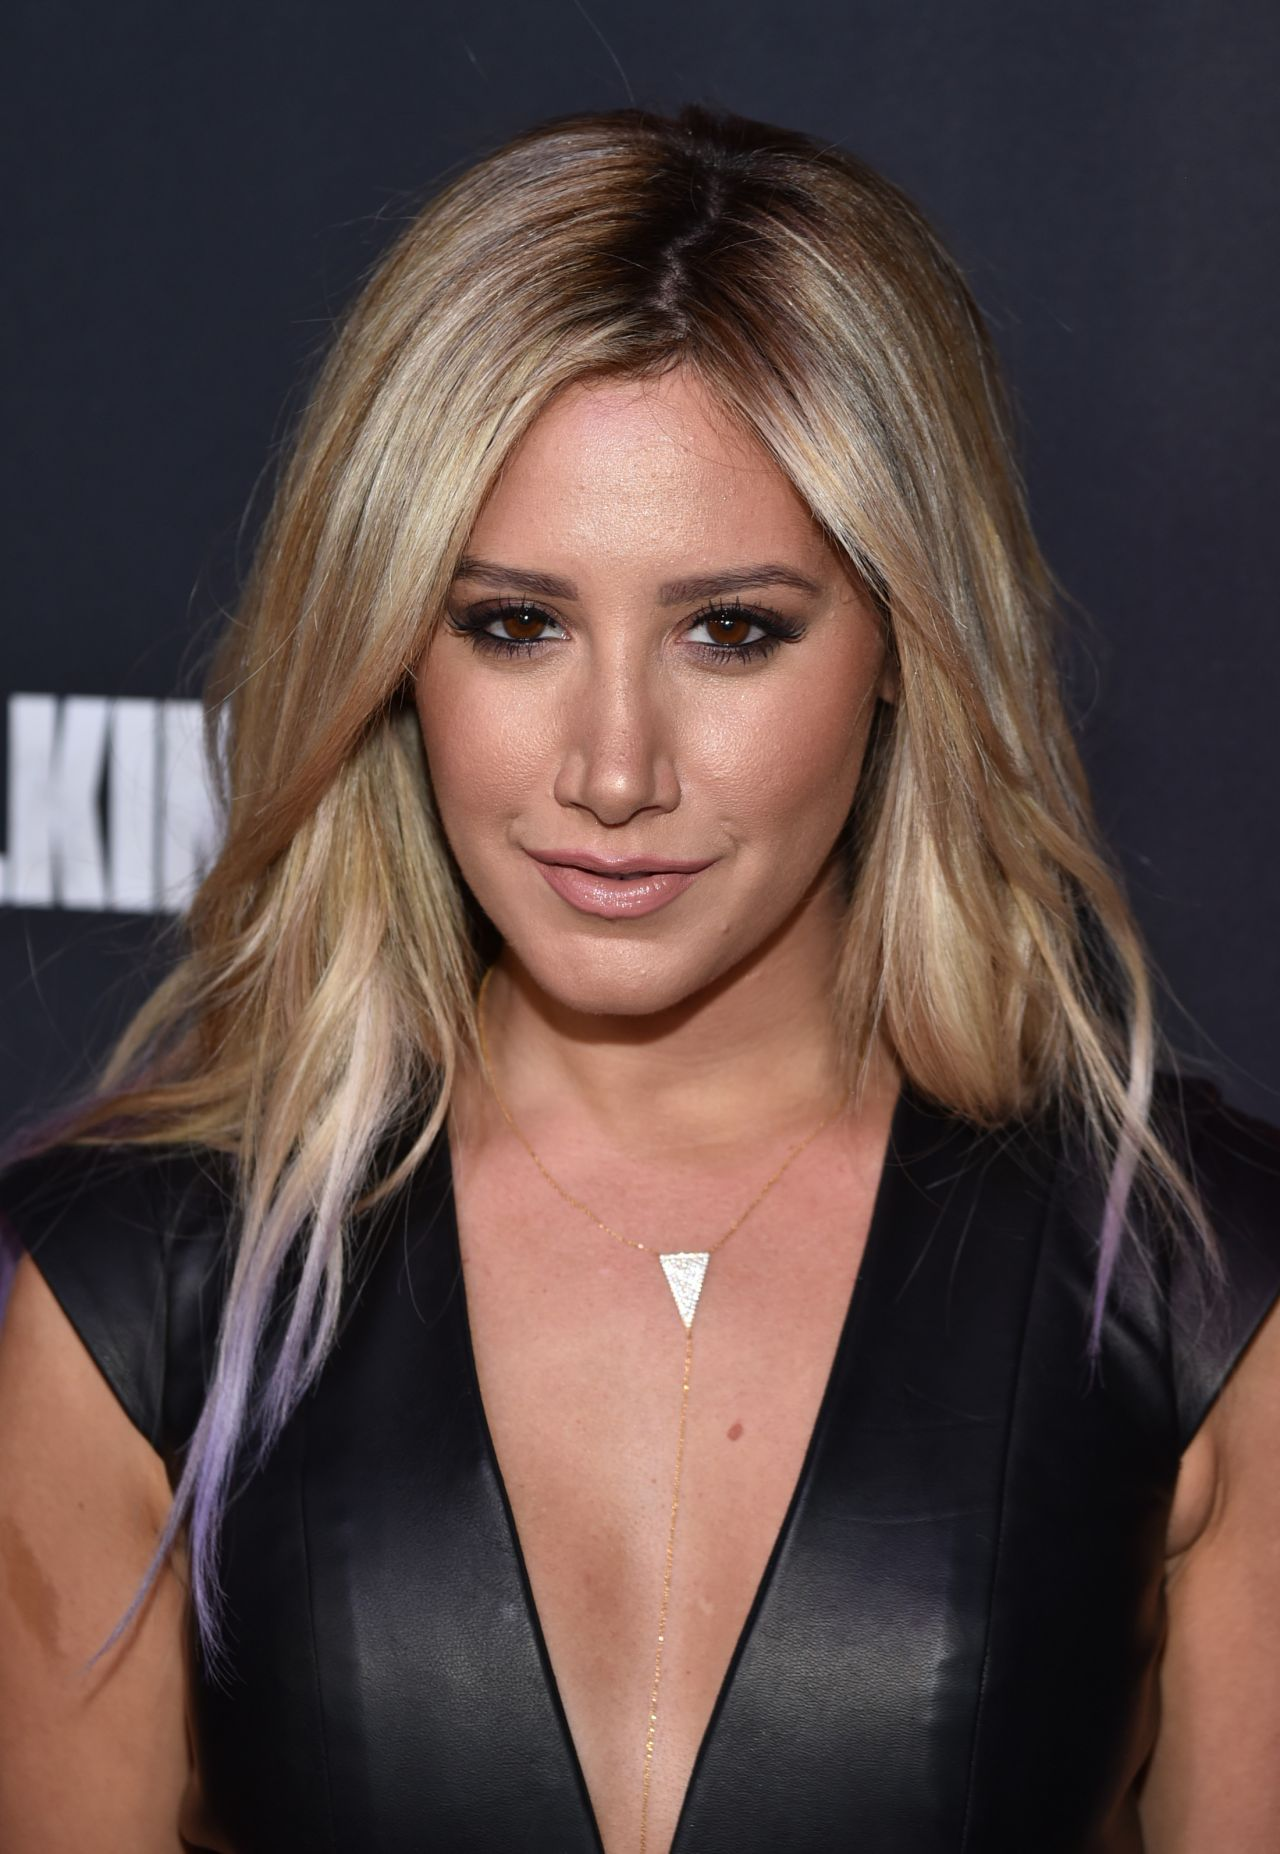 Ashley tisdale images hd full hd pictures